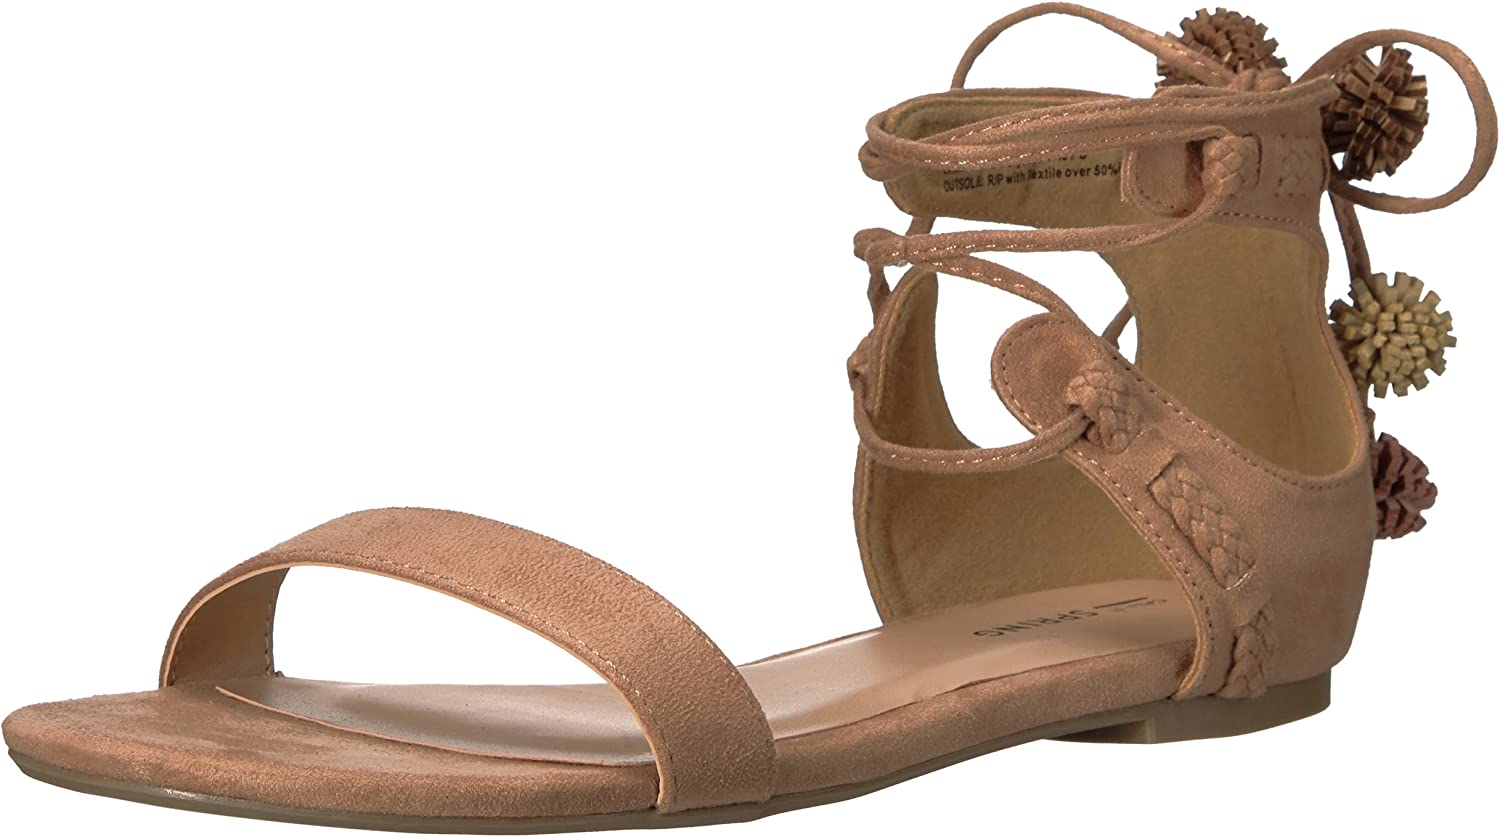 Call It Spring Womens McKeague Gladiator Sandal